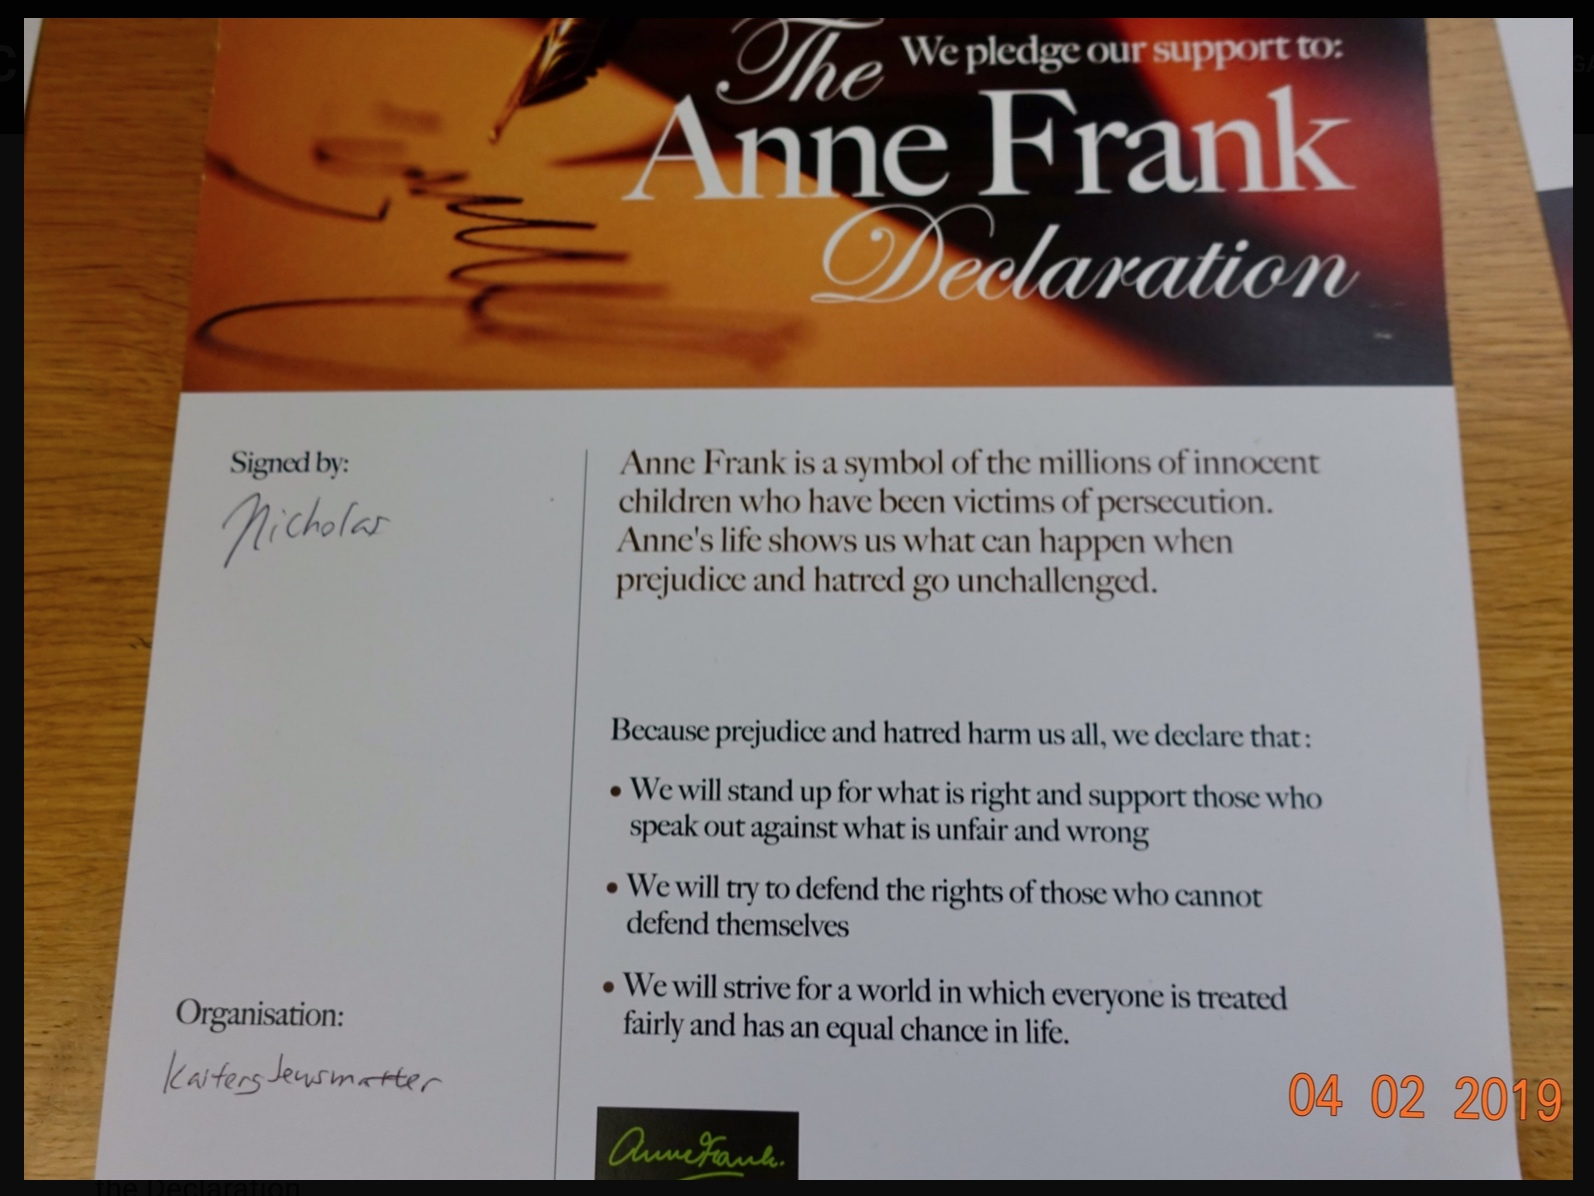 Official Signatory of the Anne Frank Declaration